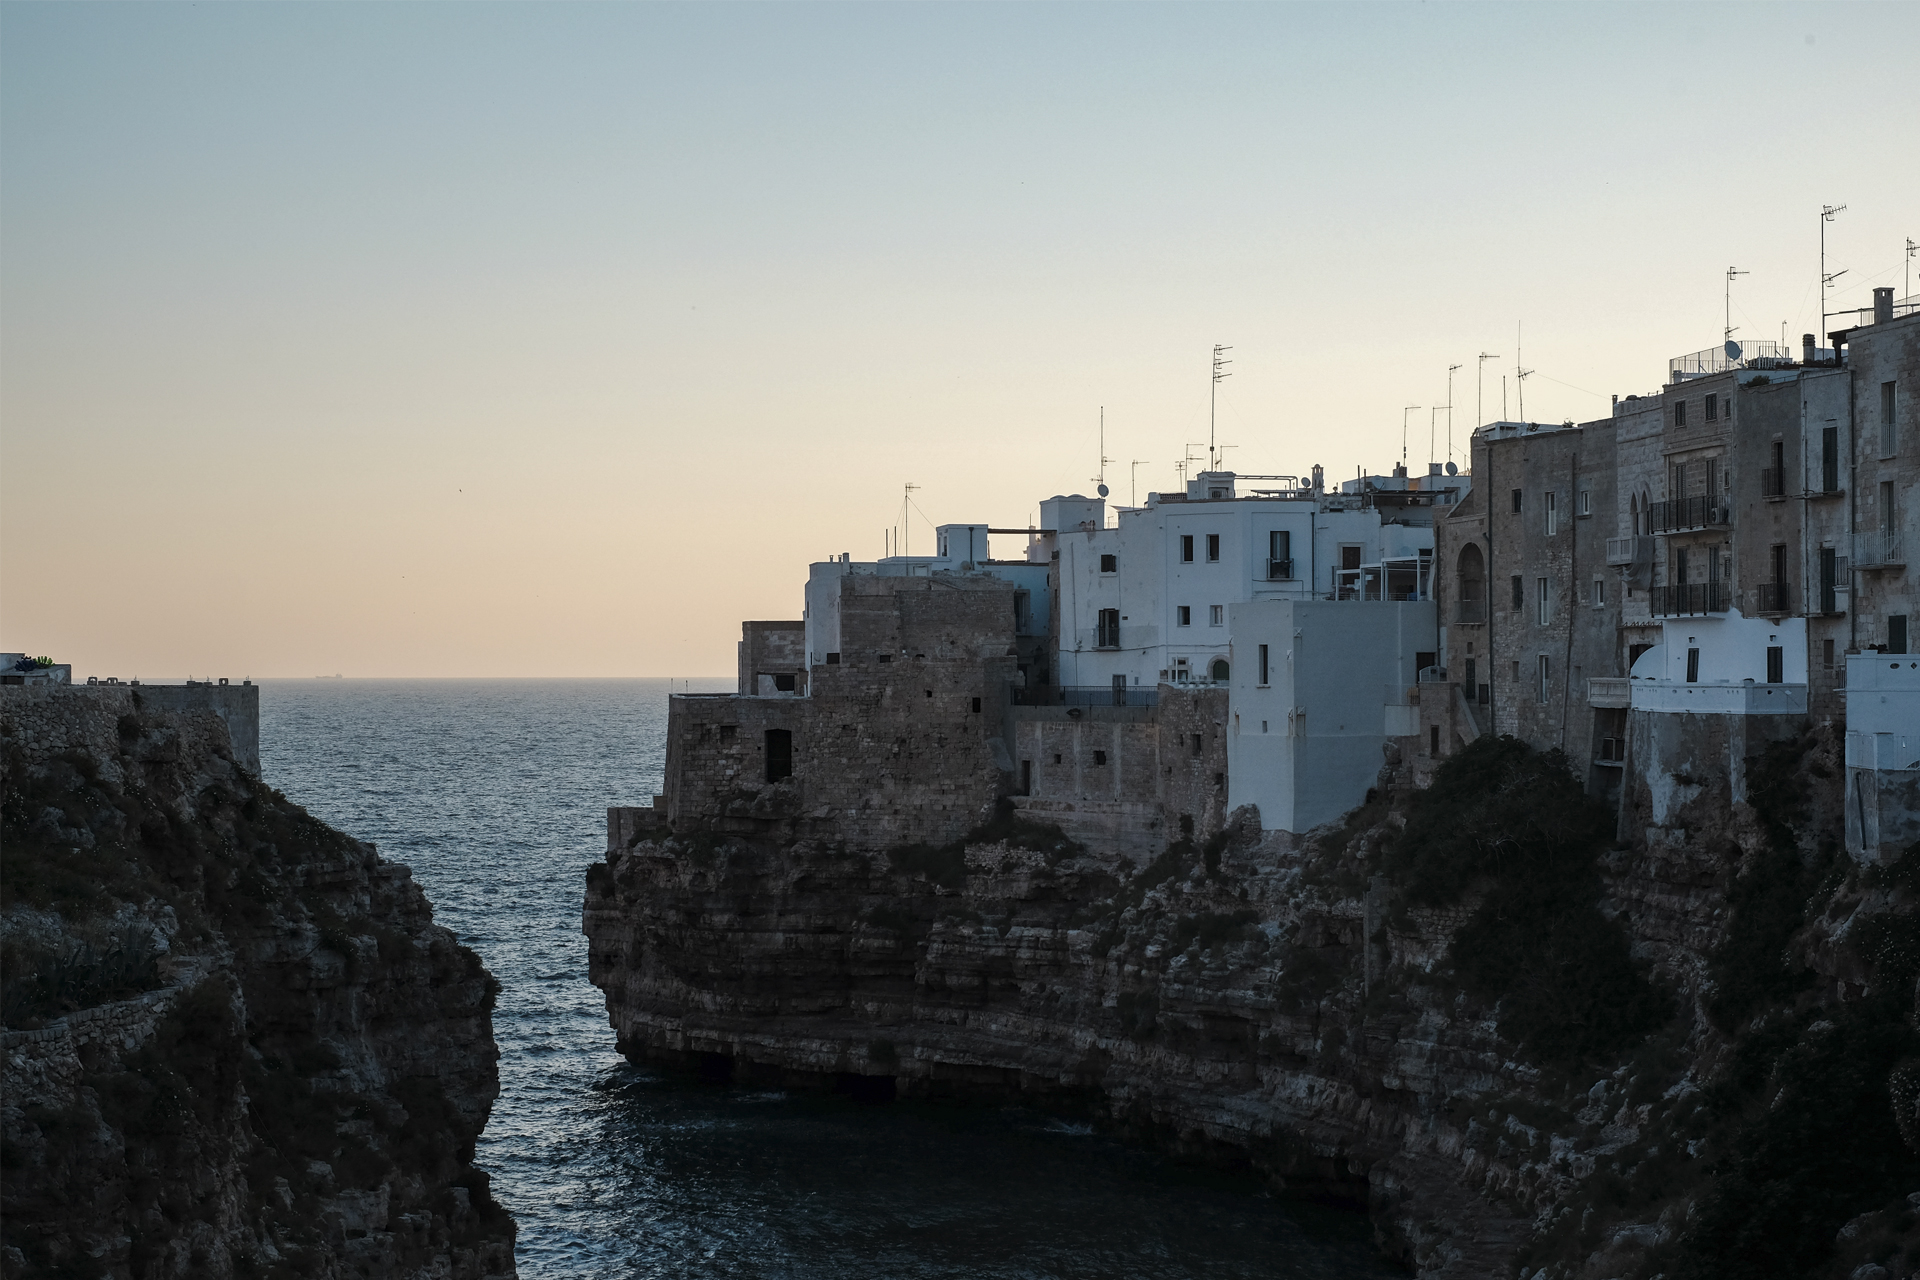 view of Lama Monachile or Cala Porto at sunrise in Polignano